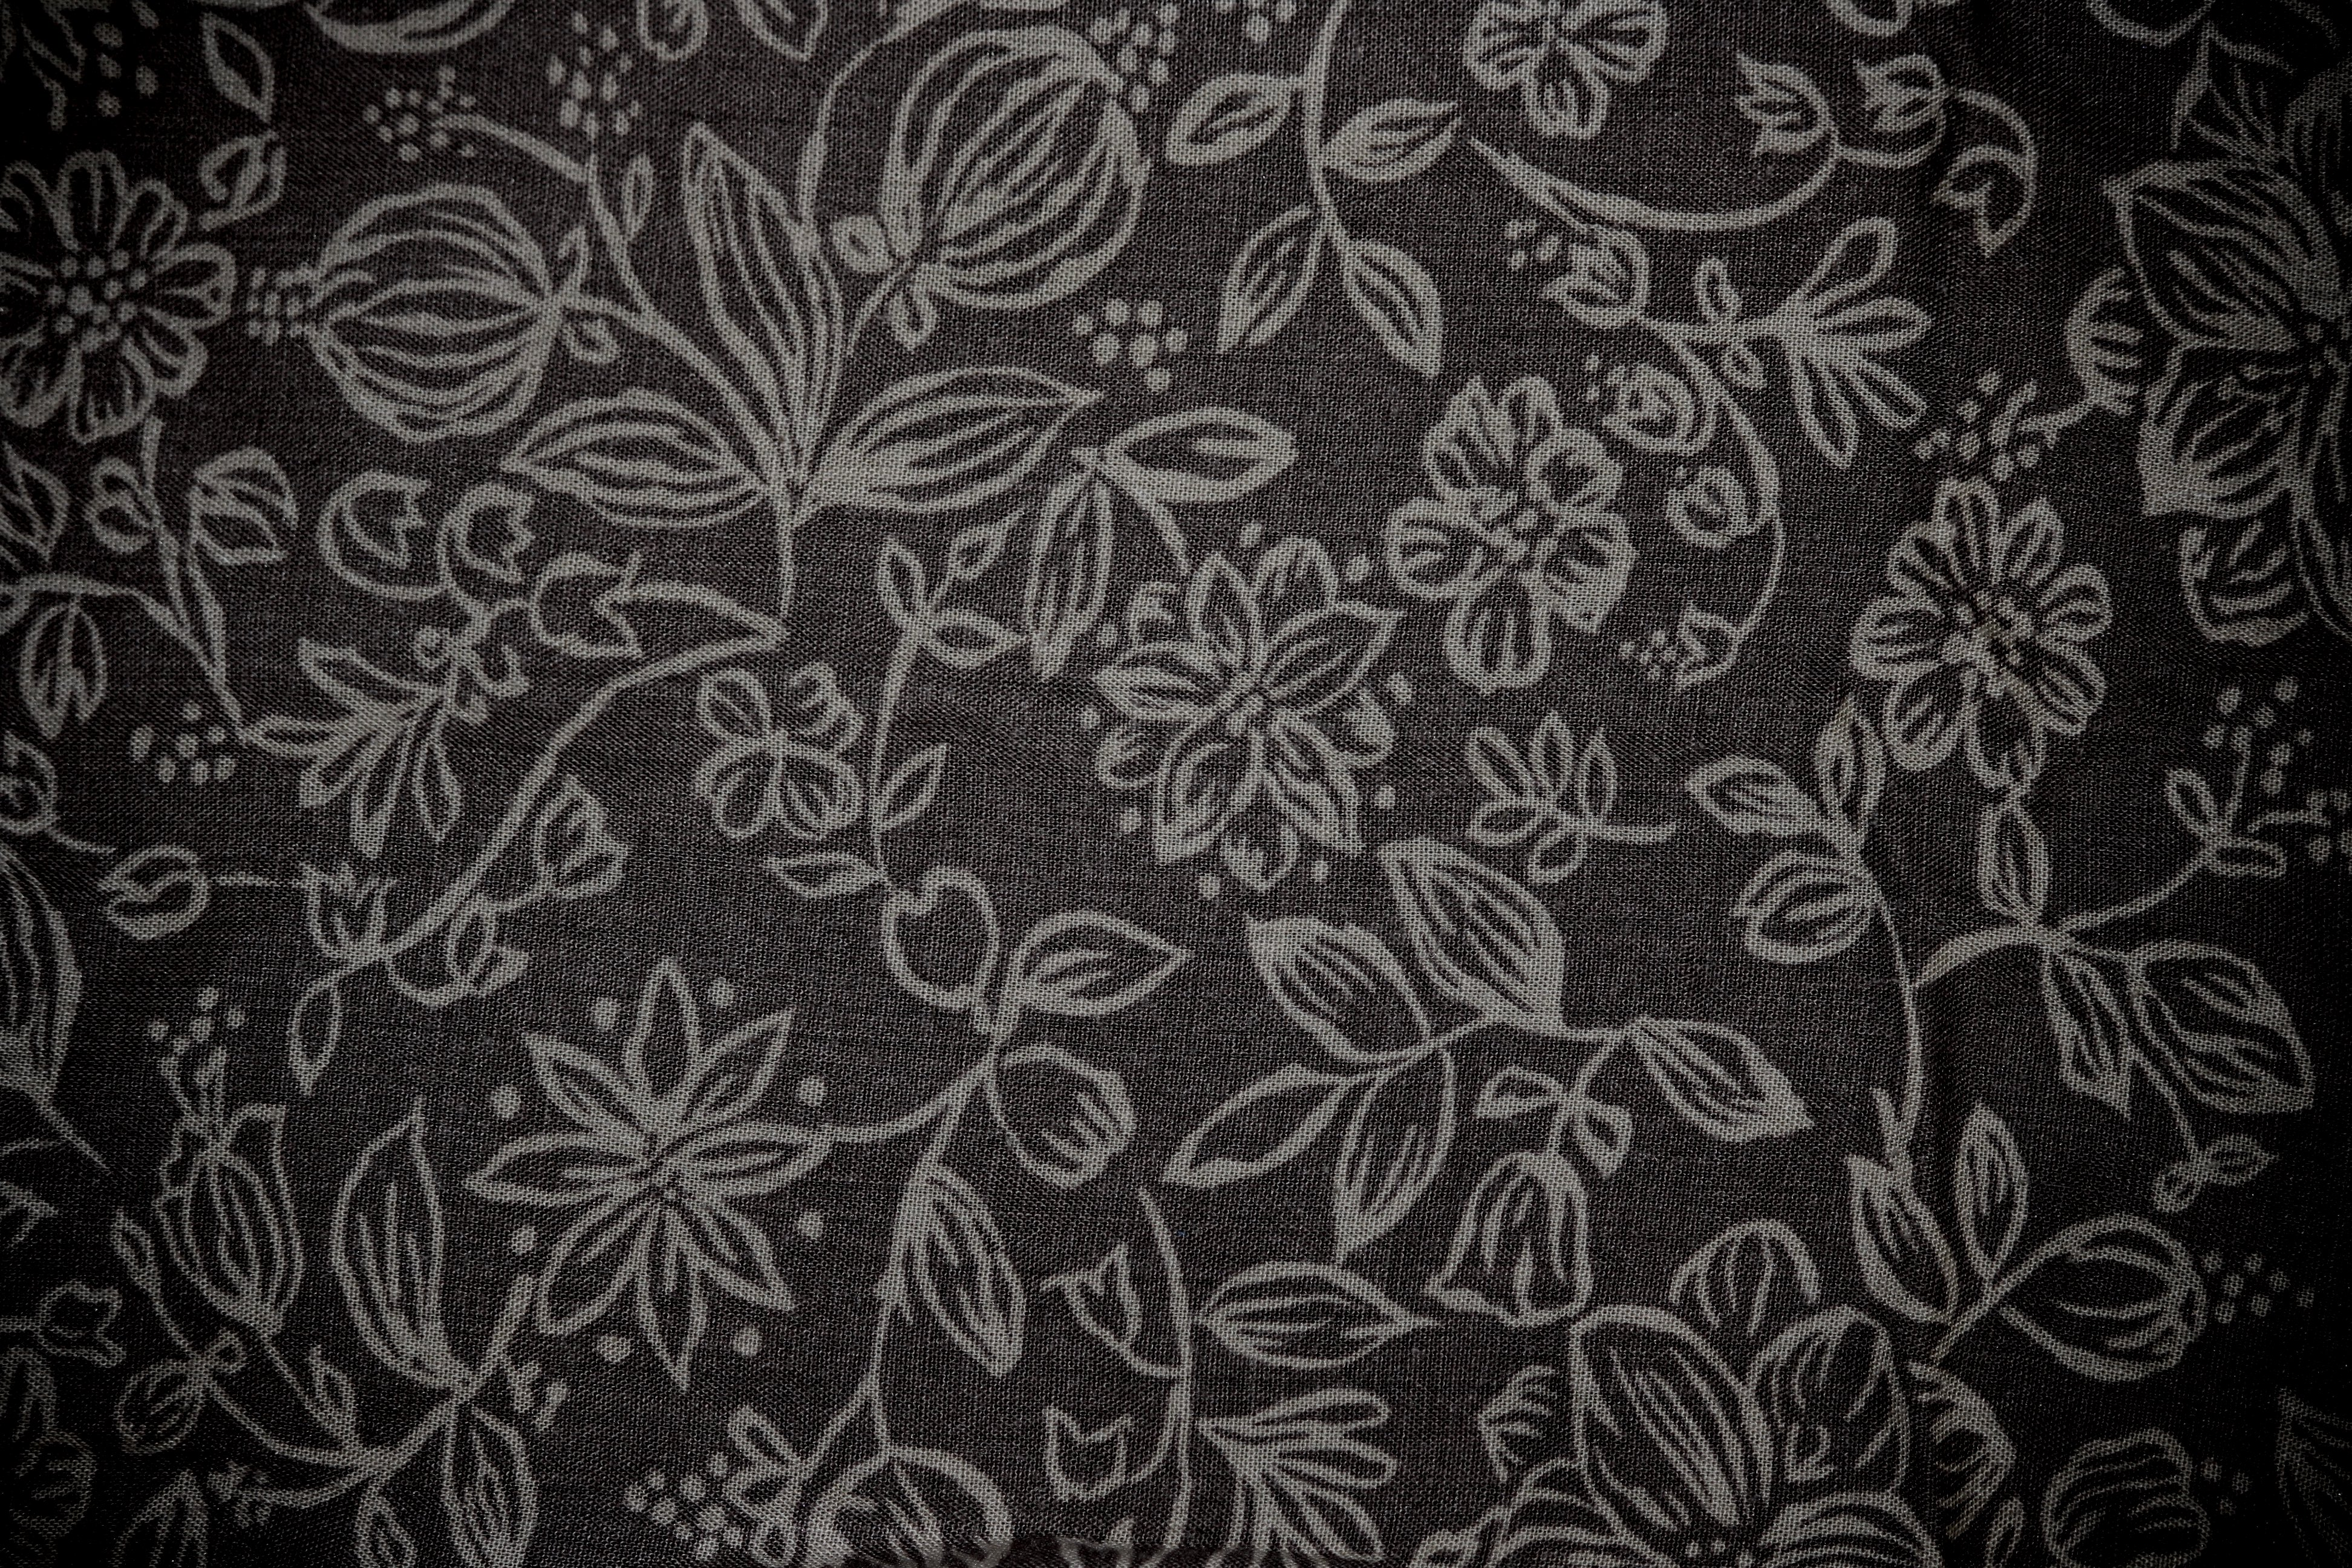 Black Fabric with Floral Pattern Texture Picture | Free ...